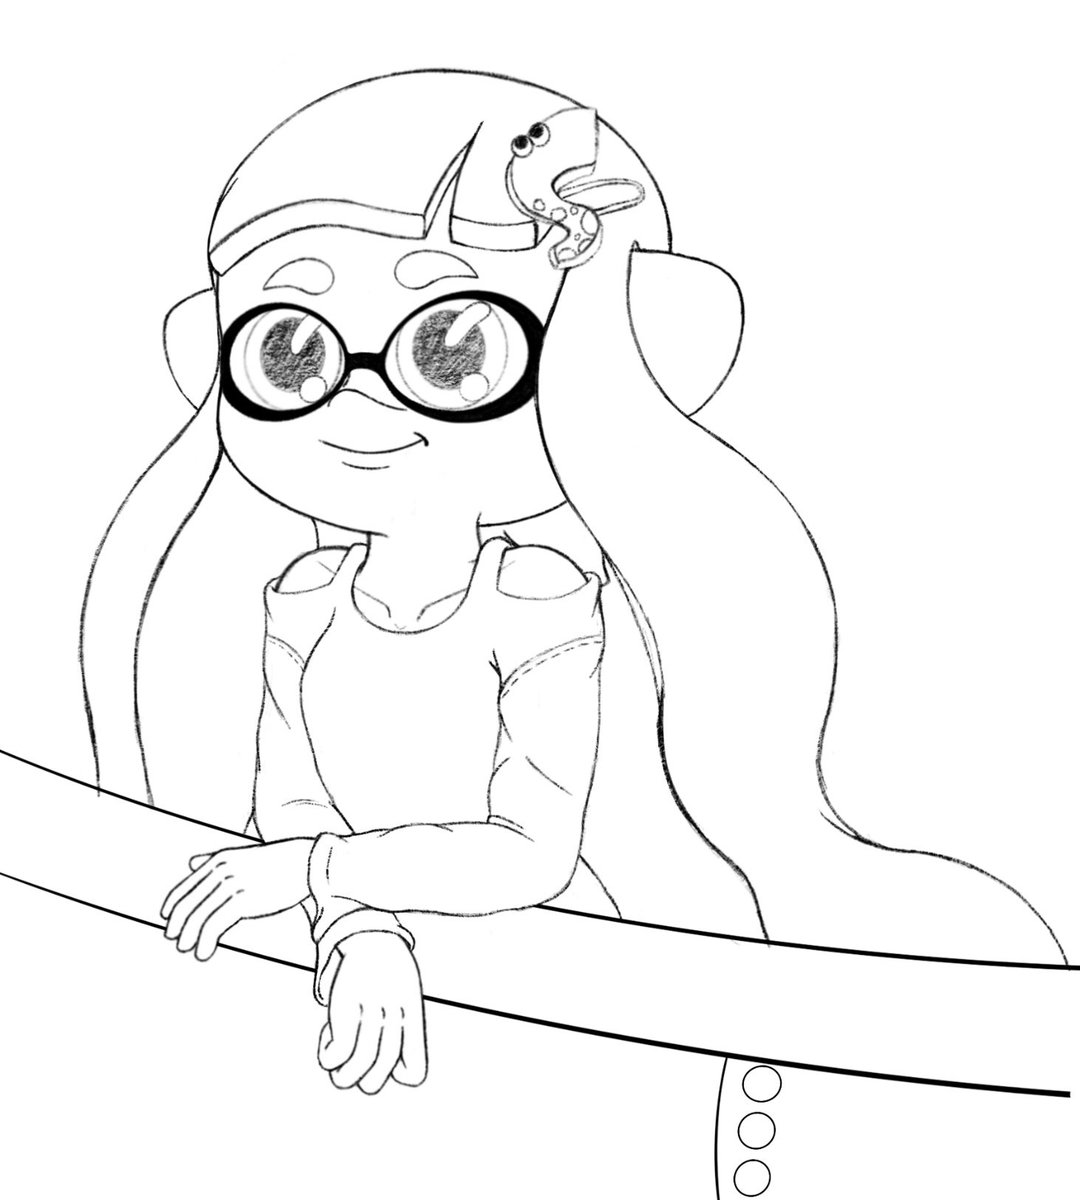 Haven't had the chance to make any birthday related drawings for myself, so instead have a sneak peak at what I'm working on next!